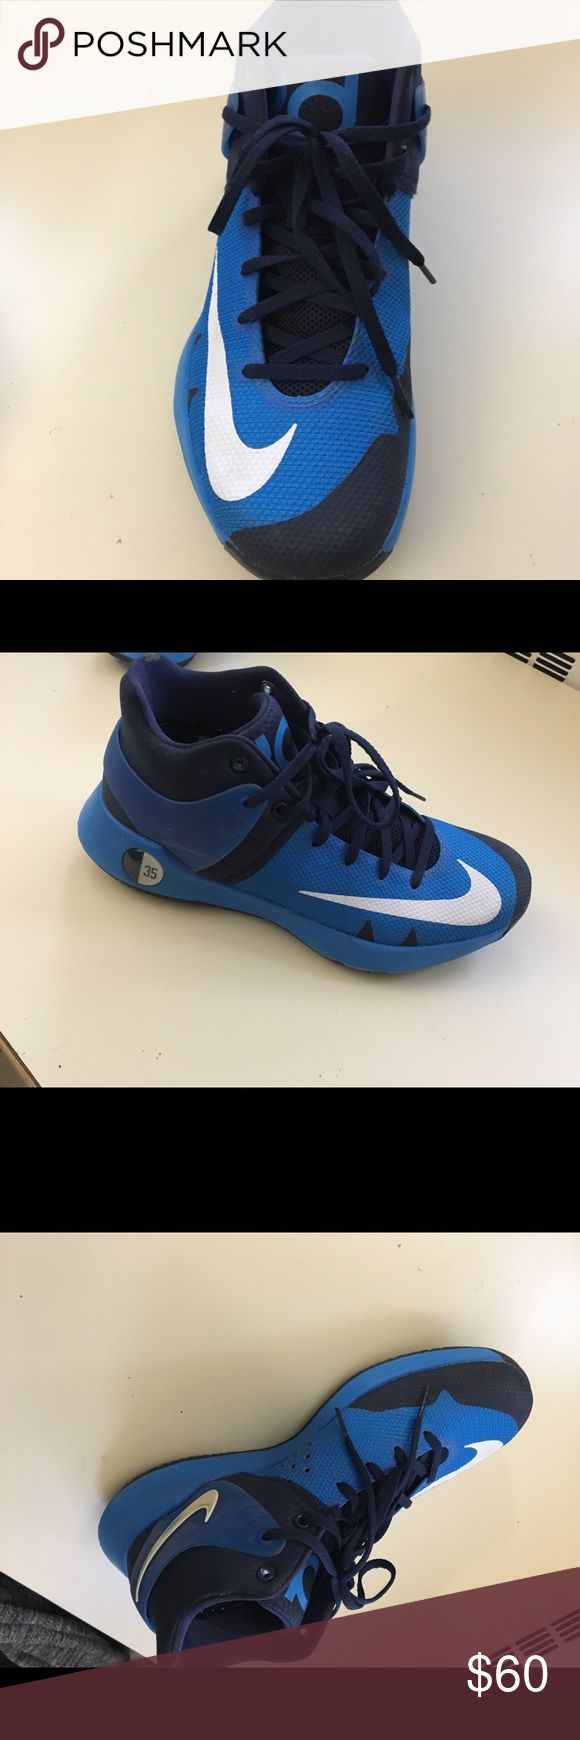 KD basketball shoes Worn couple of times in good condition Nike Shoes Sneakers